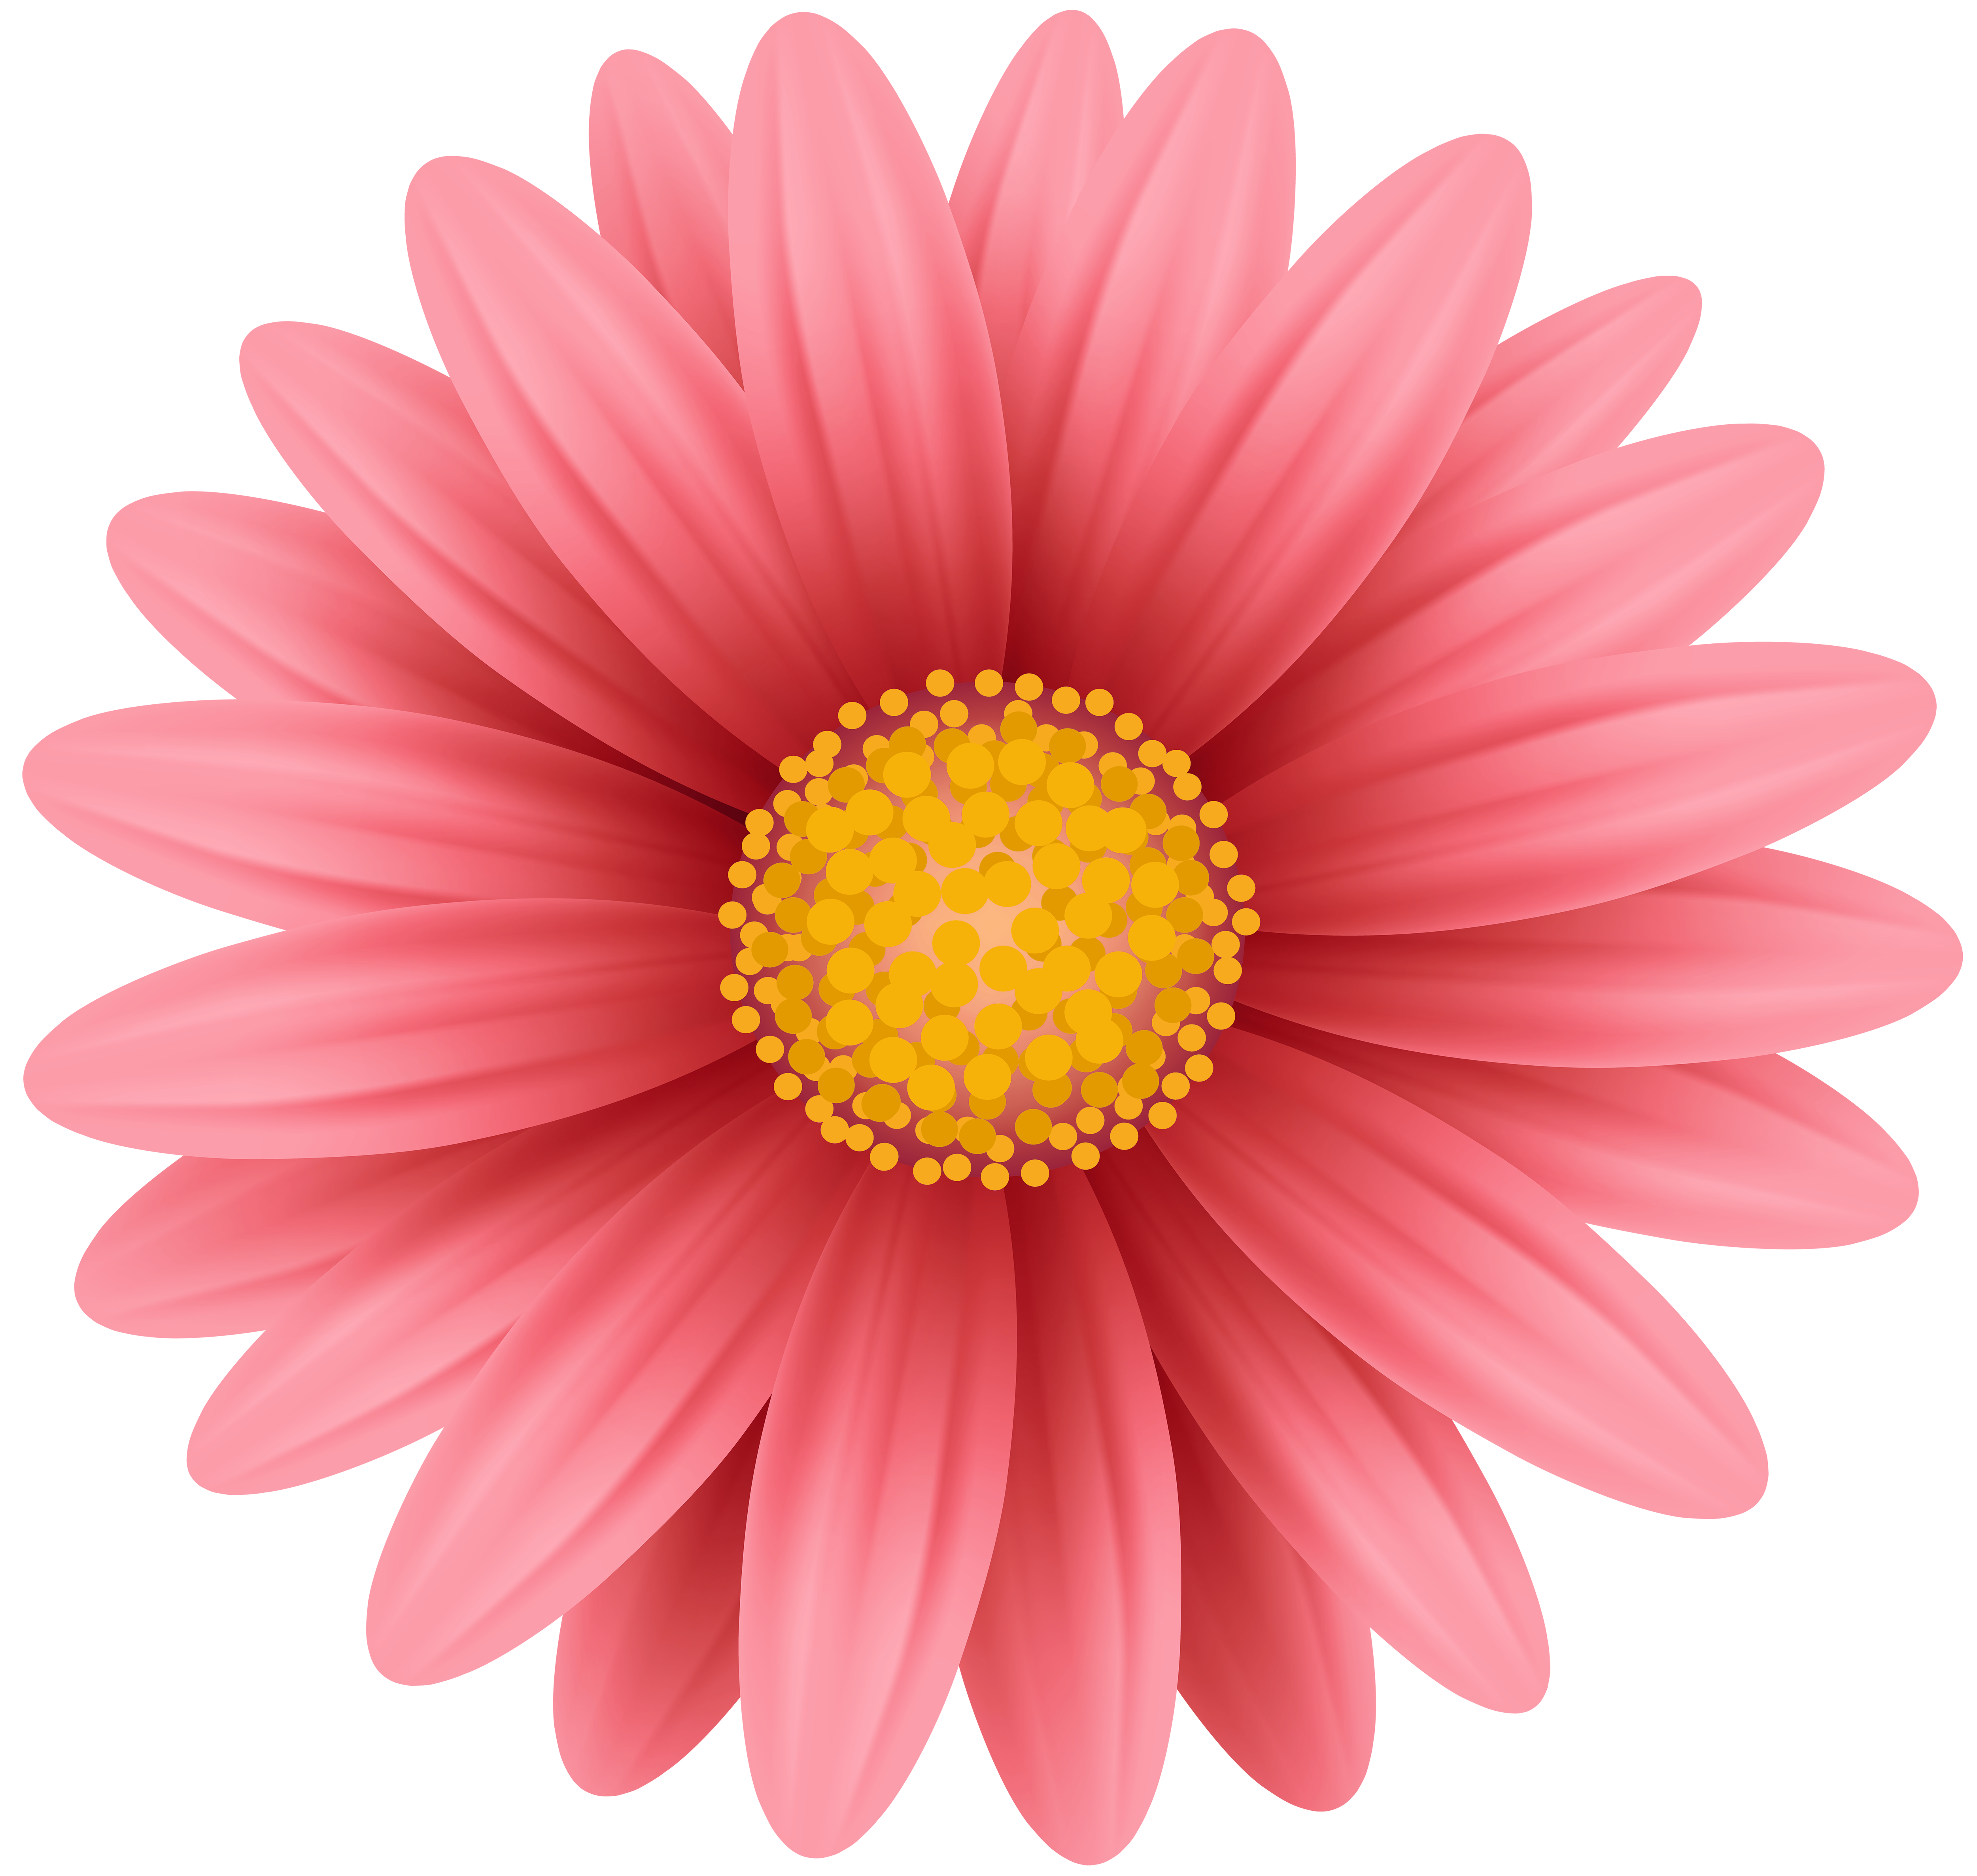 Red Flower Png Clip Art Gallery Yopriceville High Quality Images And Transparent Png Free Clipart Flower Border Clipart Red Flowers Flower Clipart